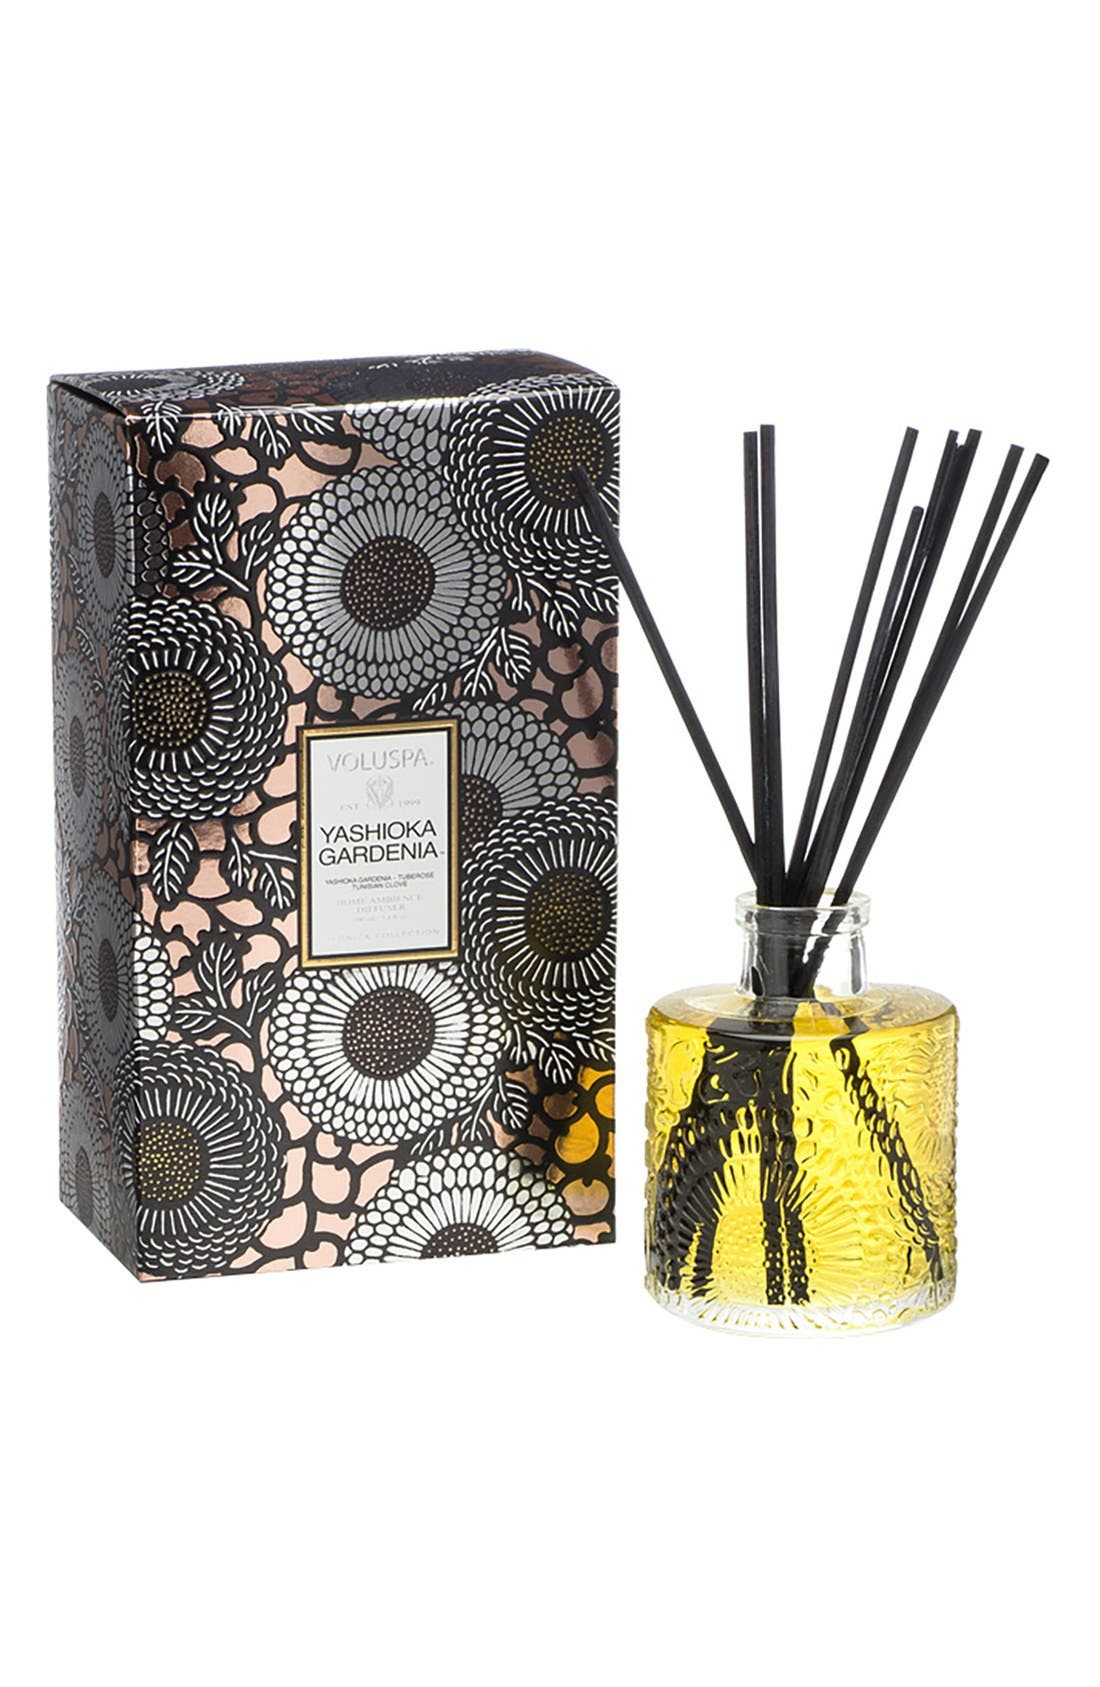 Japonica Yashioka Gardenia Fragrant Oil Diffuser,                         Main,                         color, Yashioka Gardenia